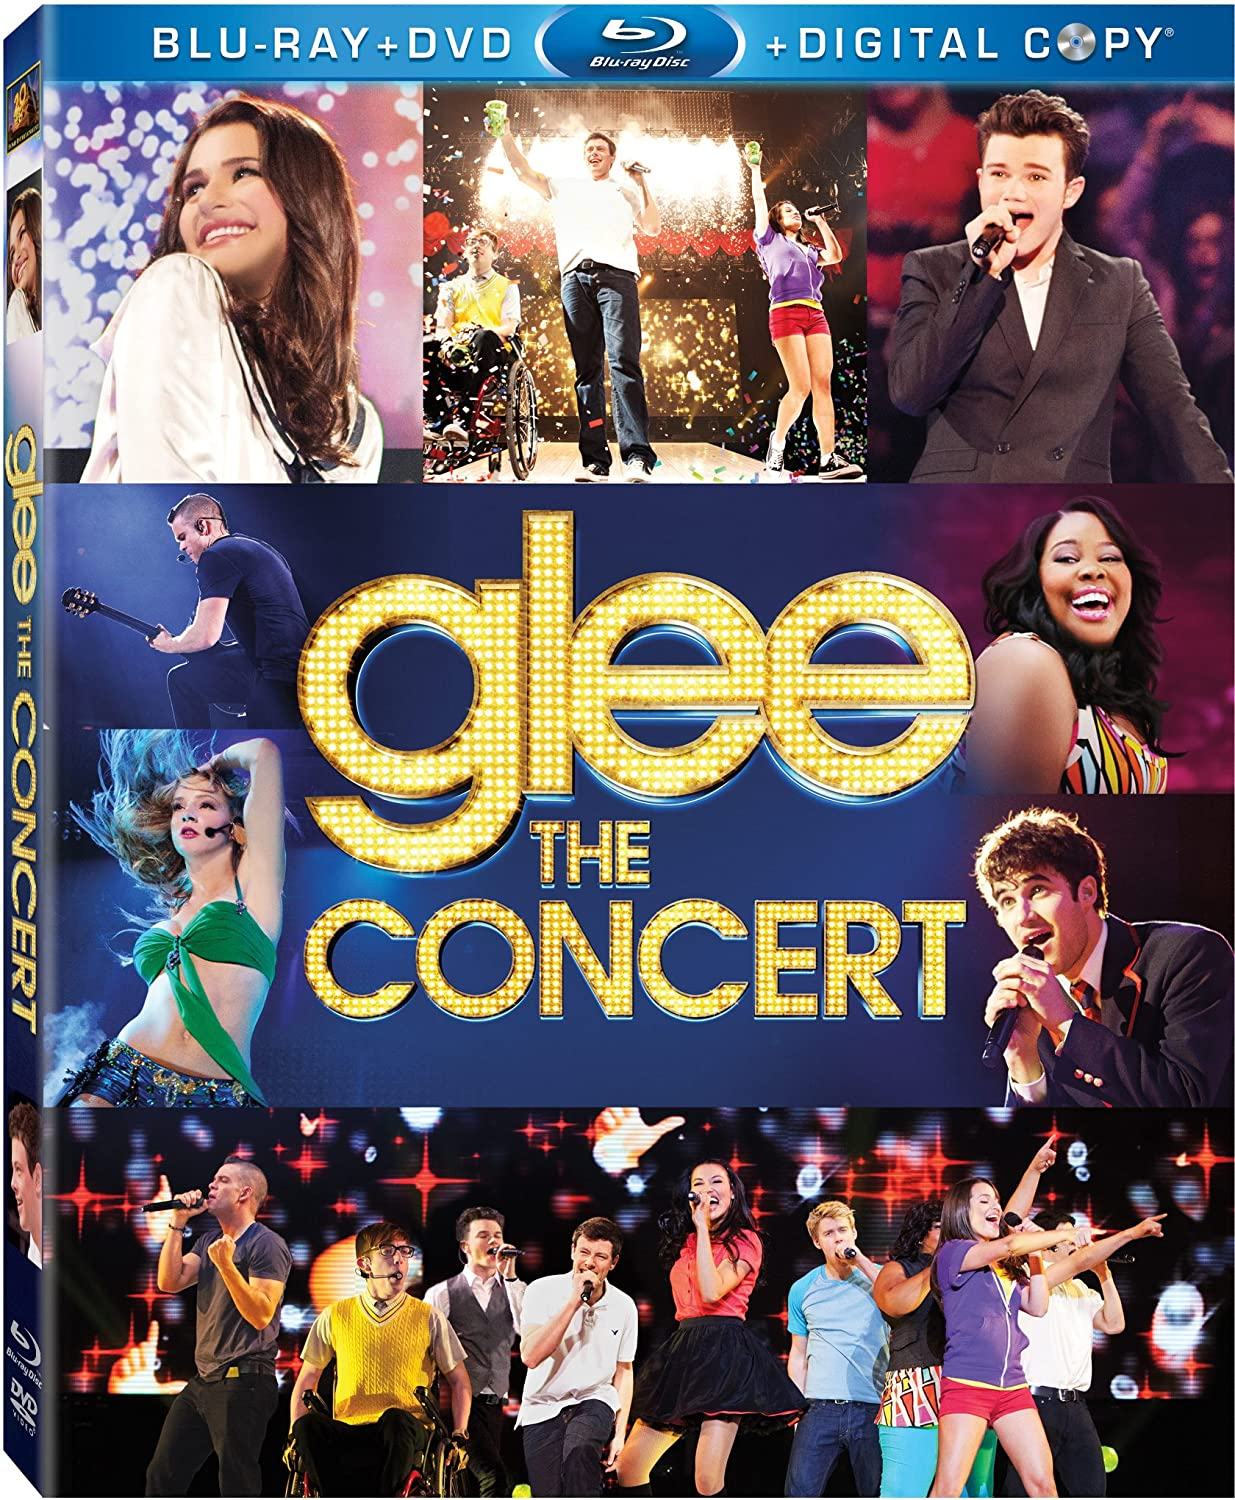 Glee: The Concert Movie [Blu-ray] 23913289 Broadway & Vocalists 3D